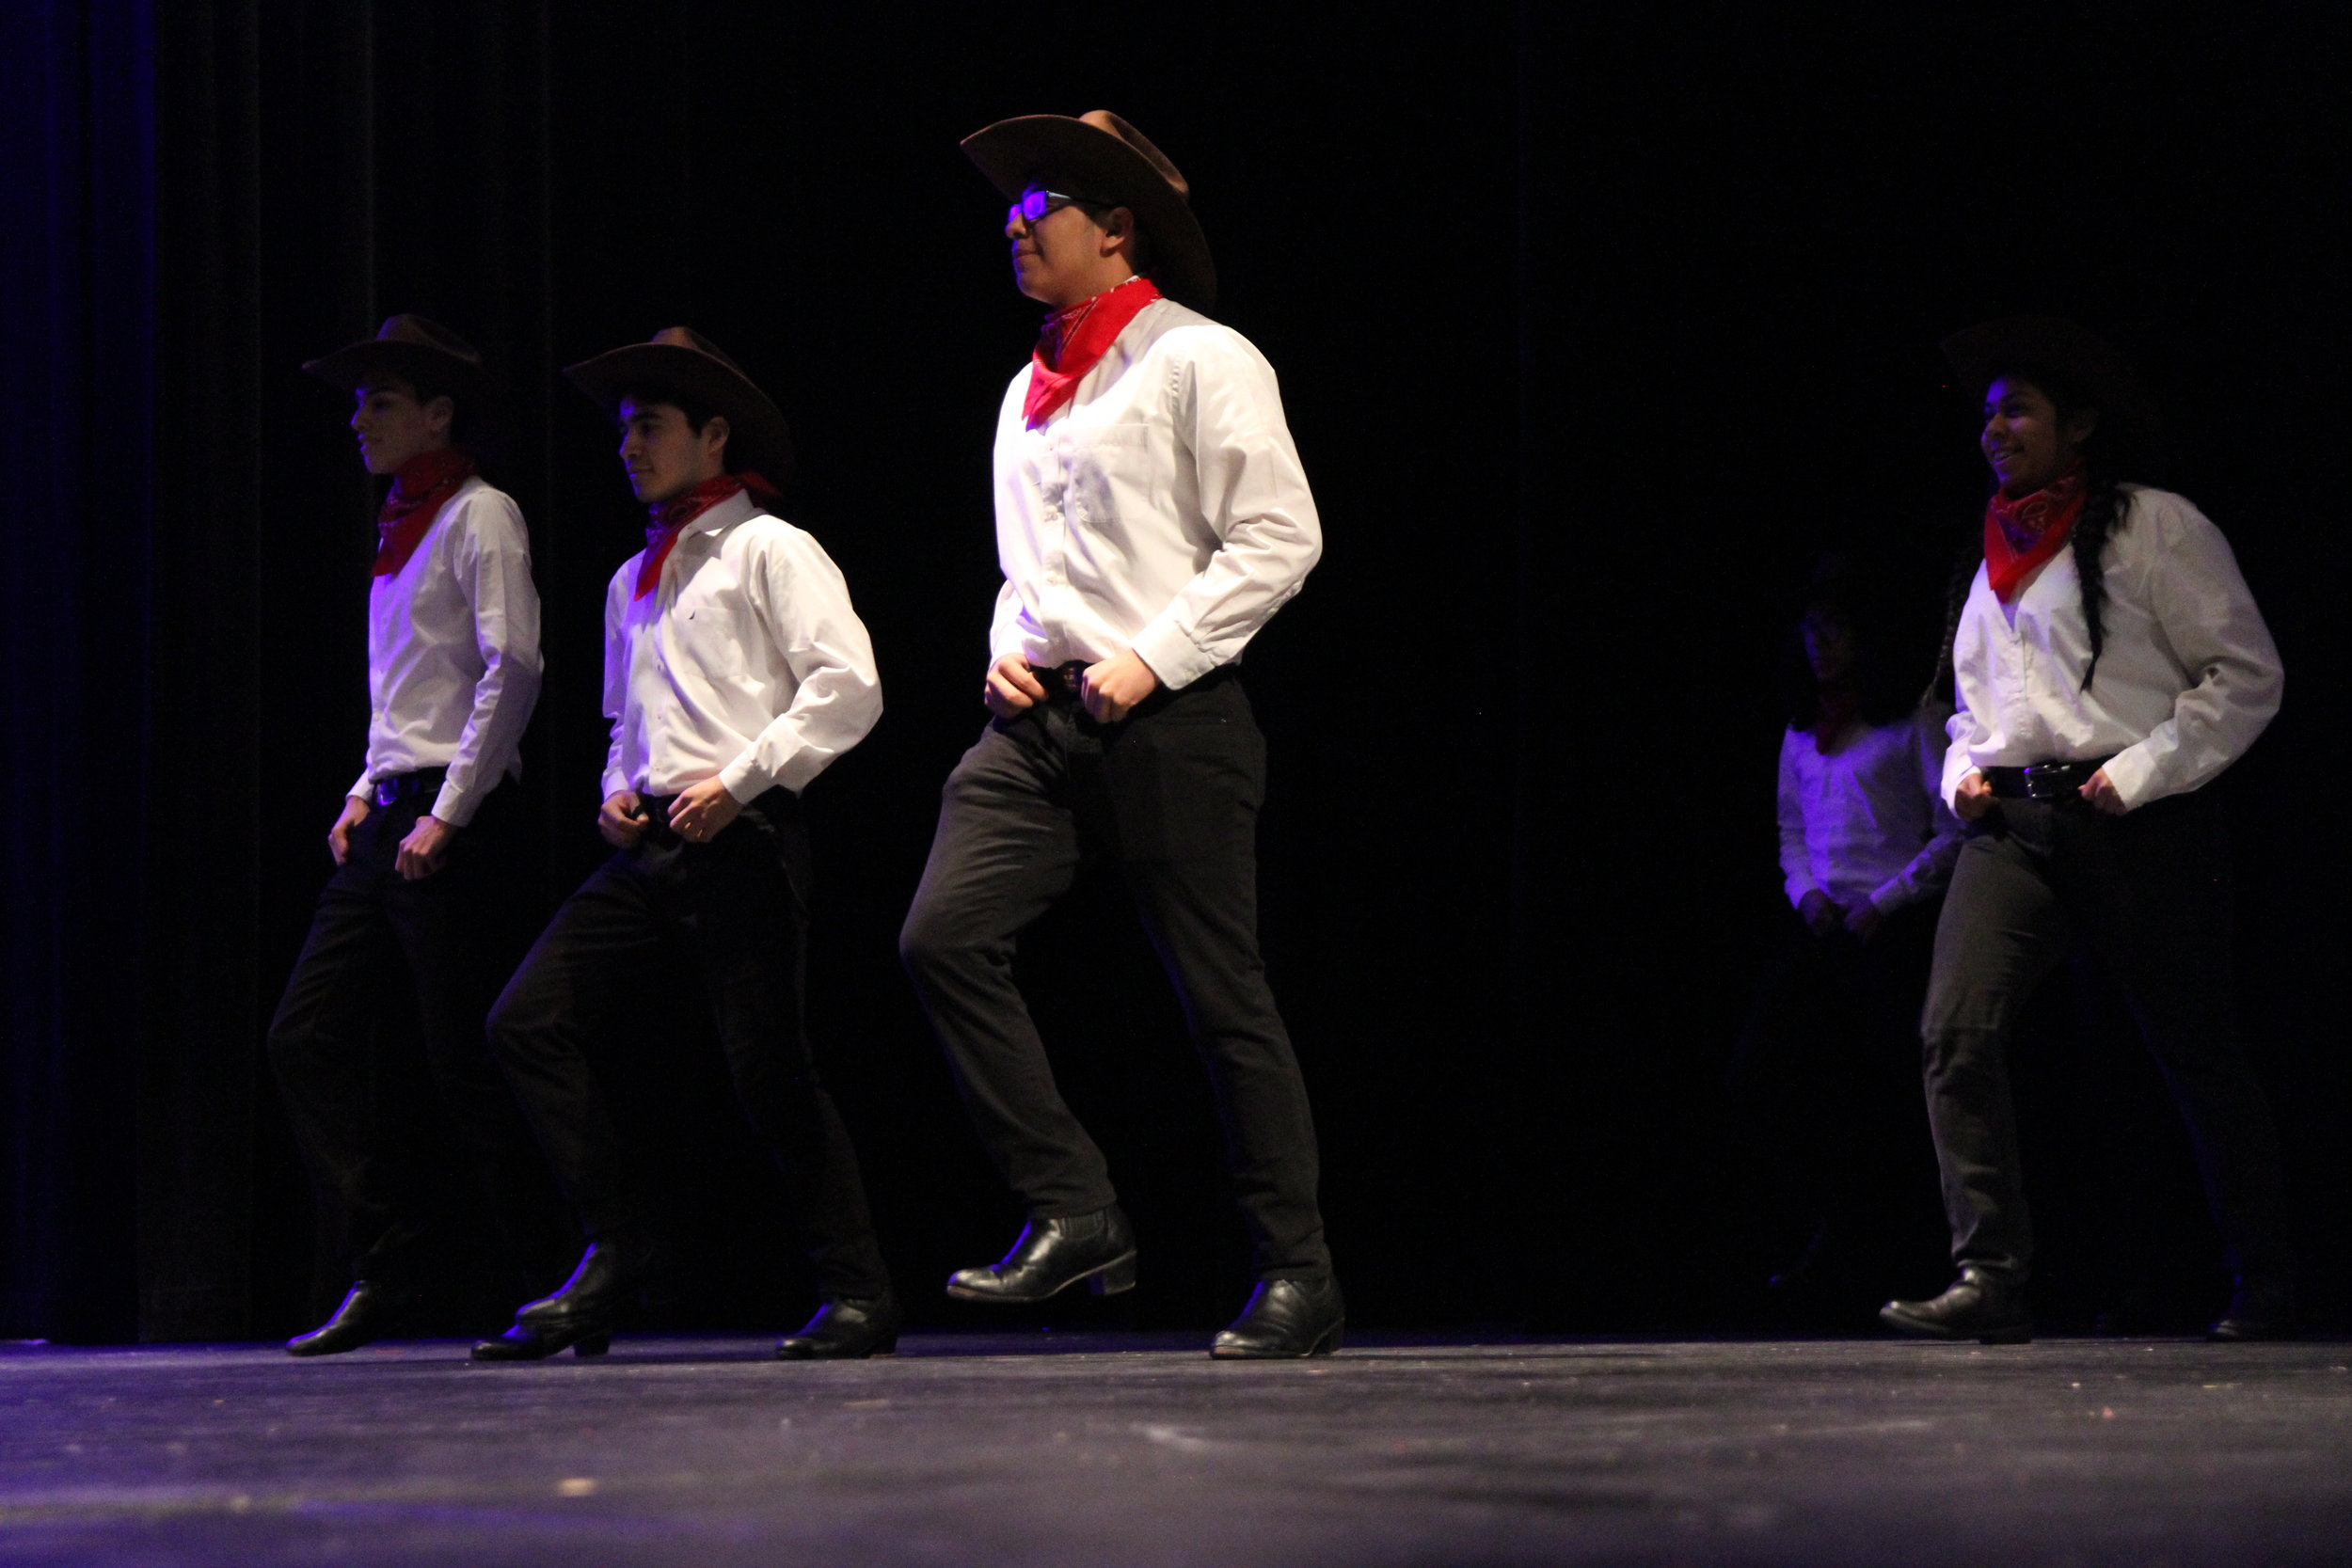 The men of Folklore Rico stomp out onto the stage in their cowboy hats and with red handkerchiefs around their neck